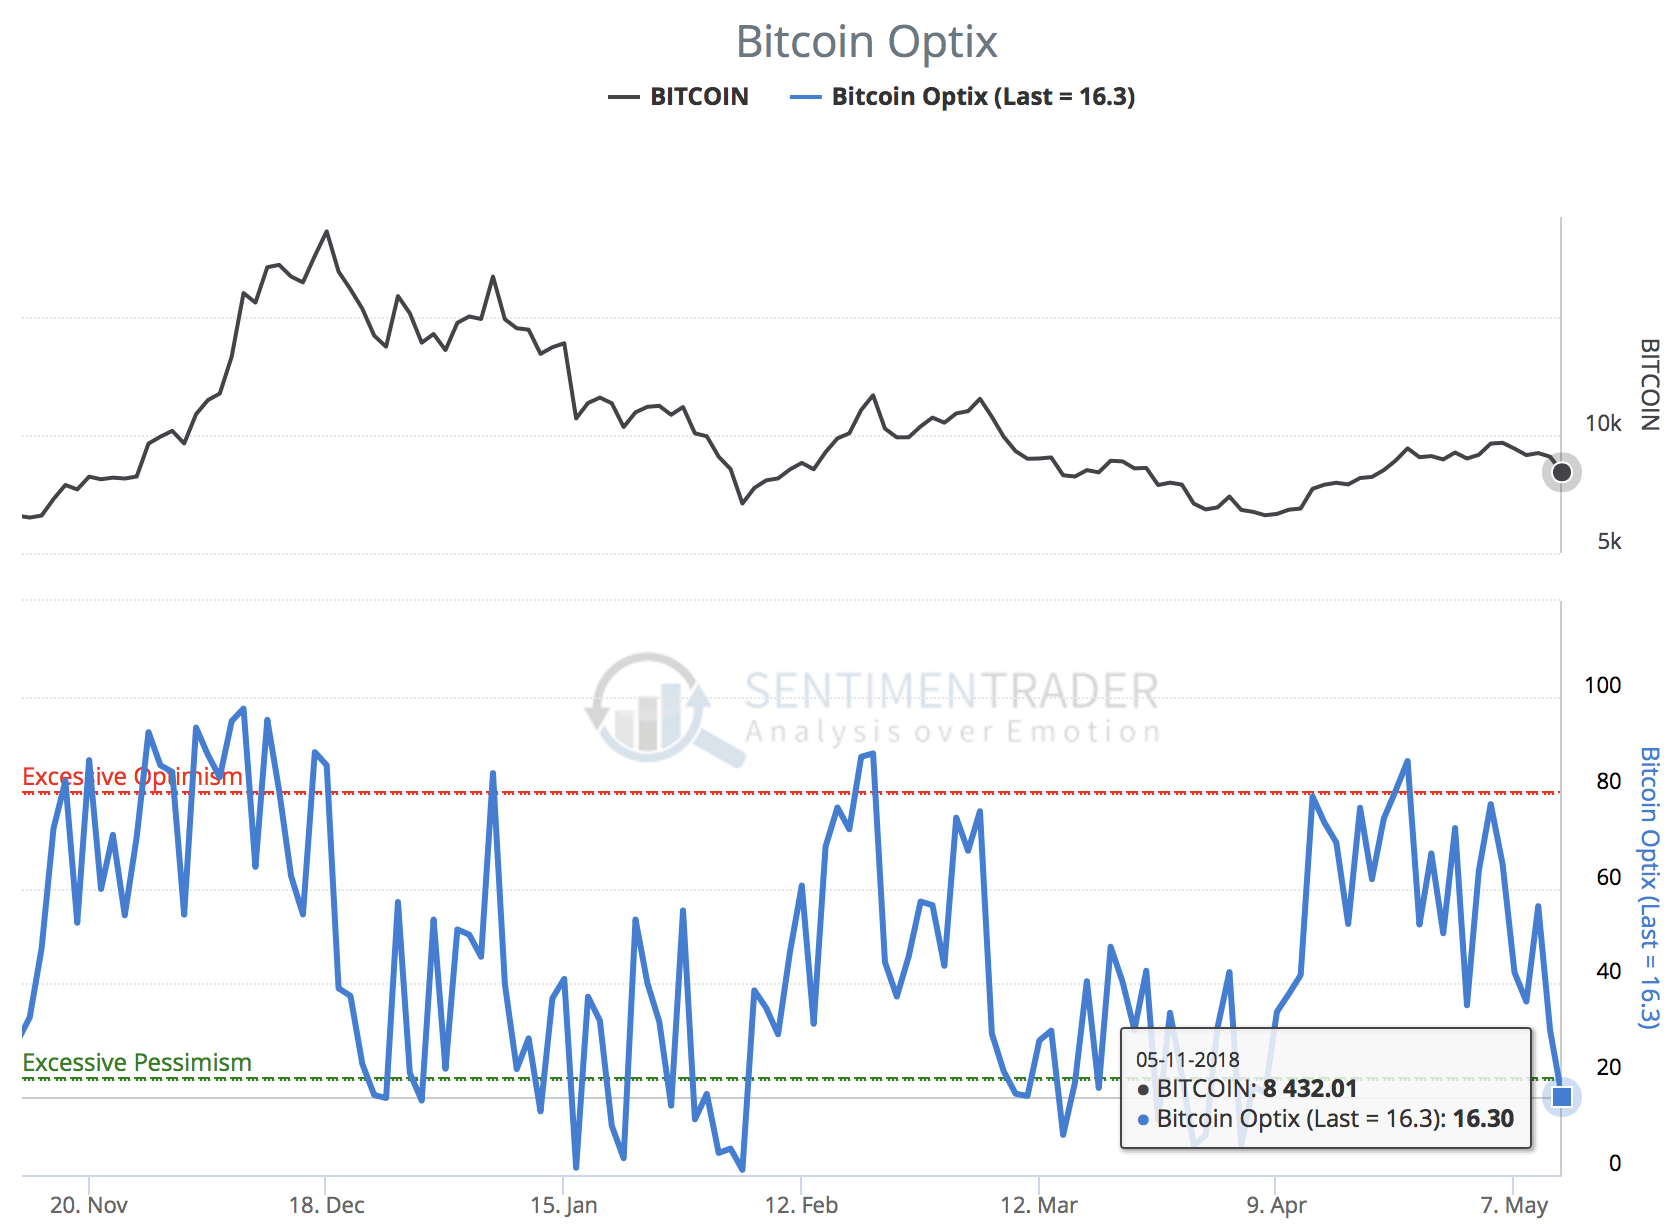 Bitcoin Sentiment as of May 13th, 2018